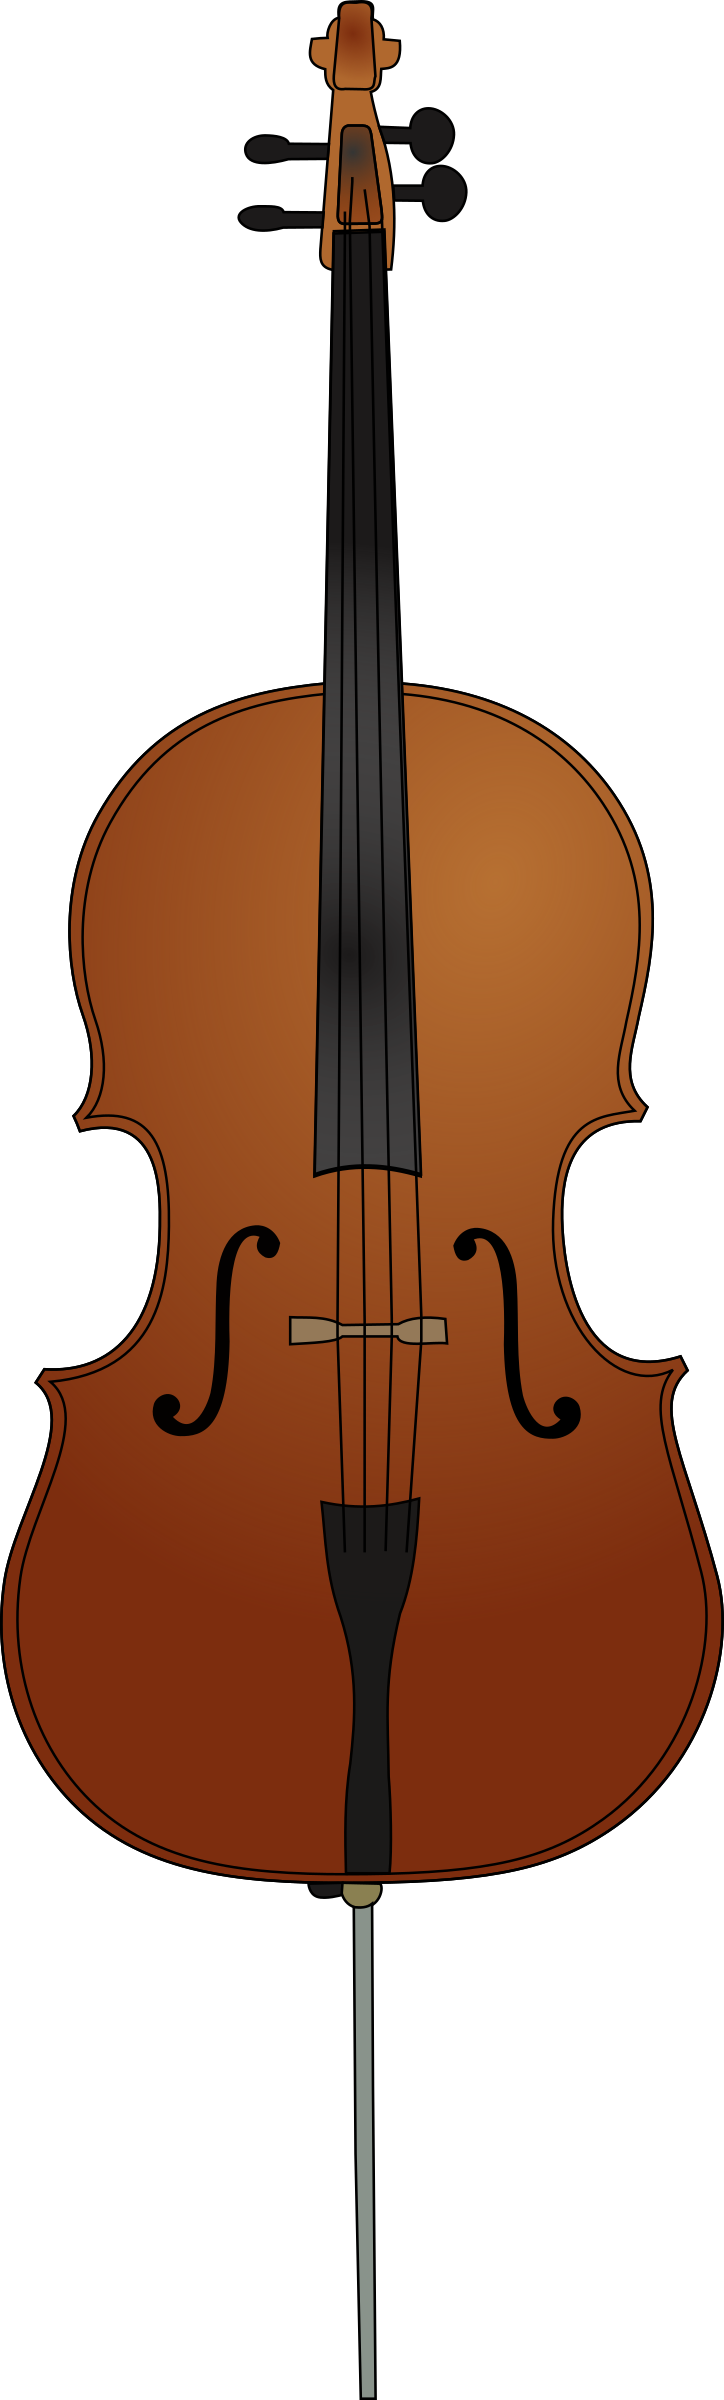 cello 1 by papapishu